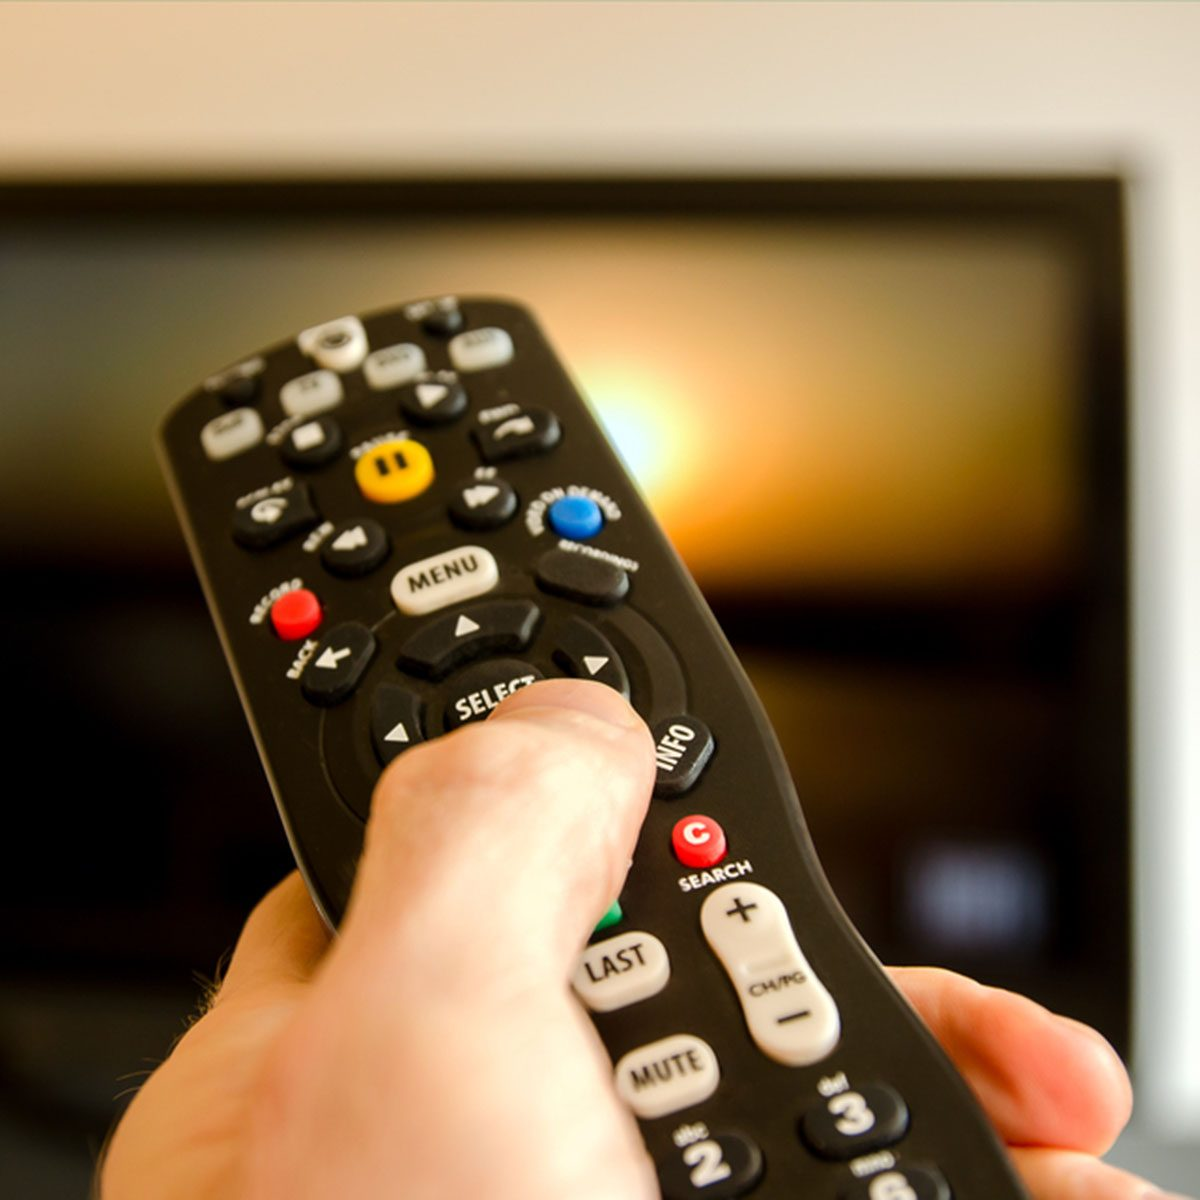 Watching tv and using remote control; Shutterstock ID 137593505